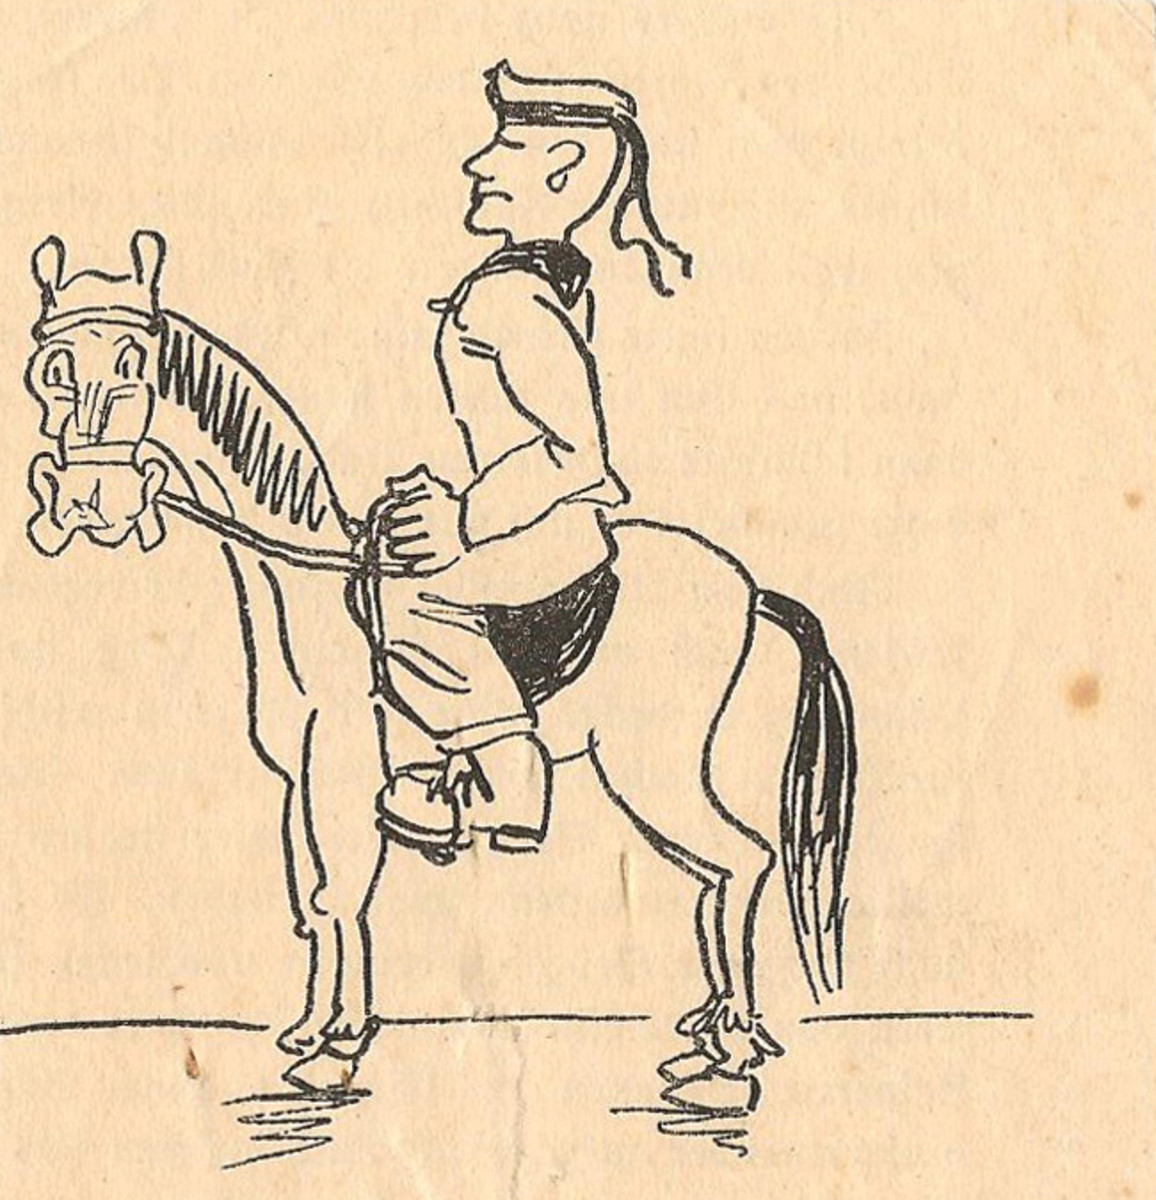 The cover of the 18-page award document for a third class German Horseman's Badge awarded to navy officer, Korvette Kaptain Karl Grade in 1943. The sailor on horse cartoon was inserted into the booklet.